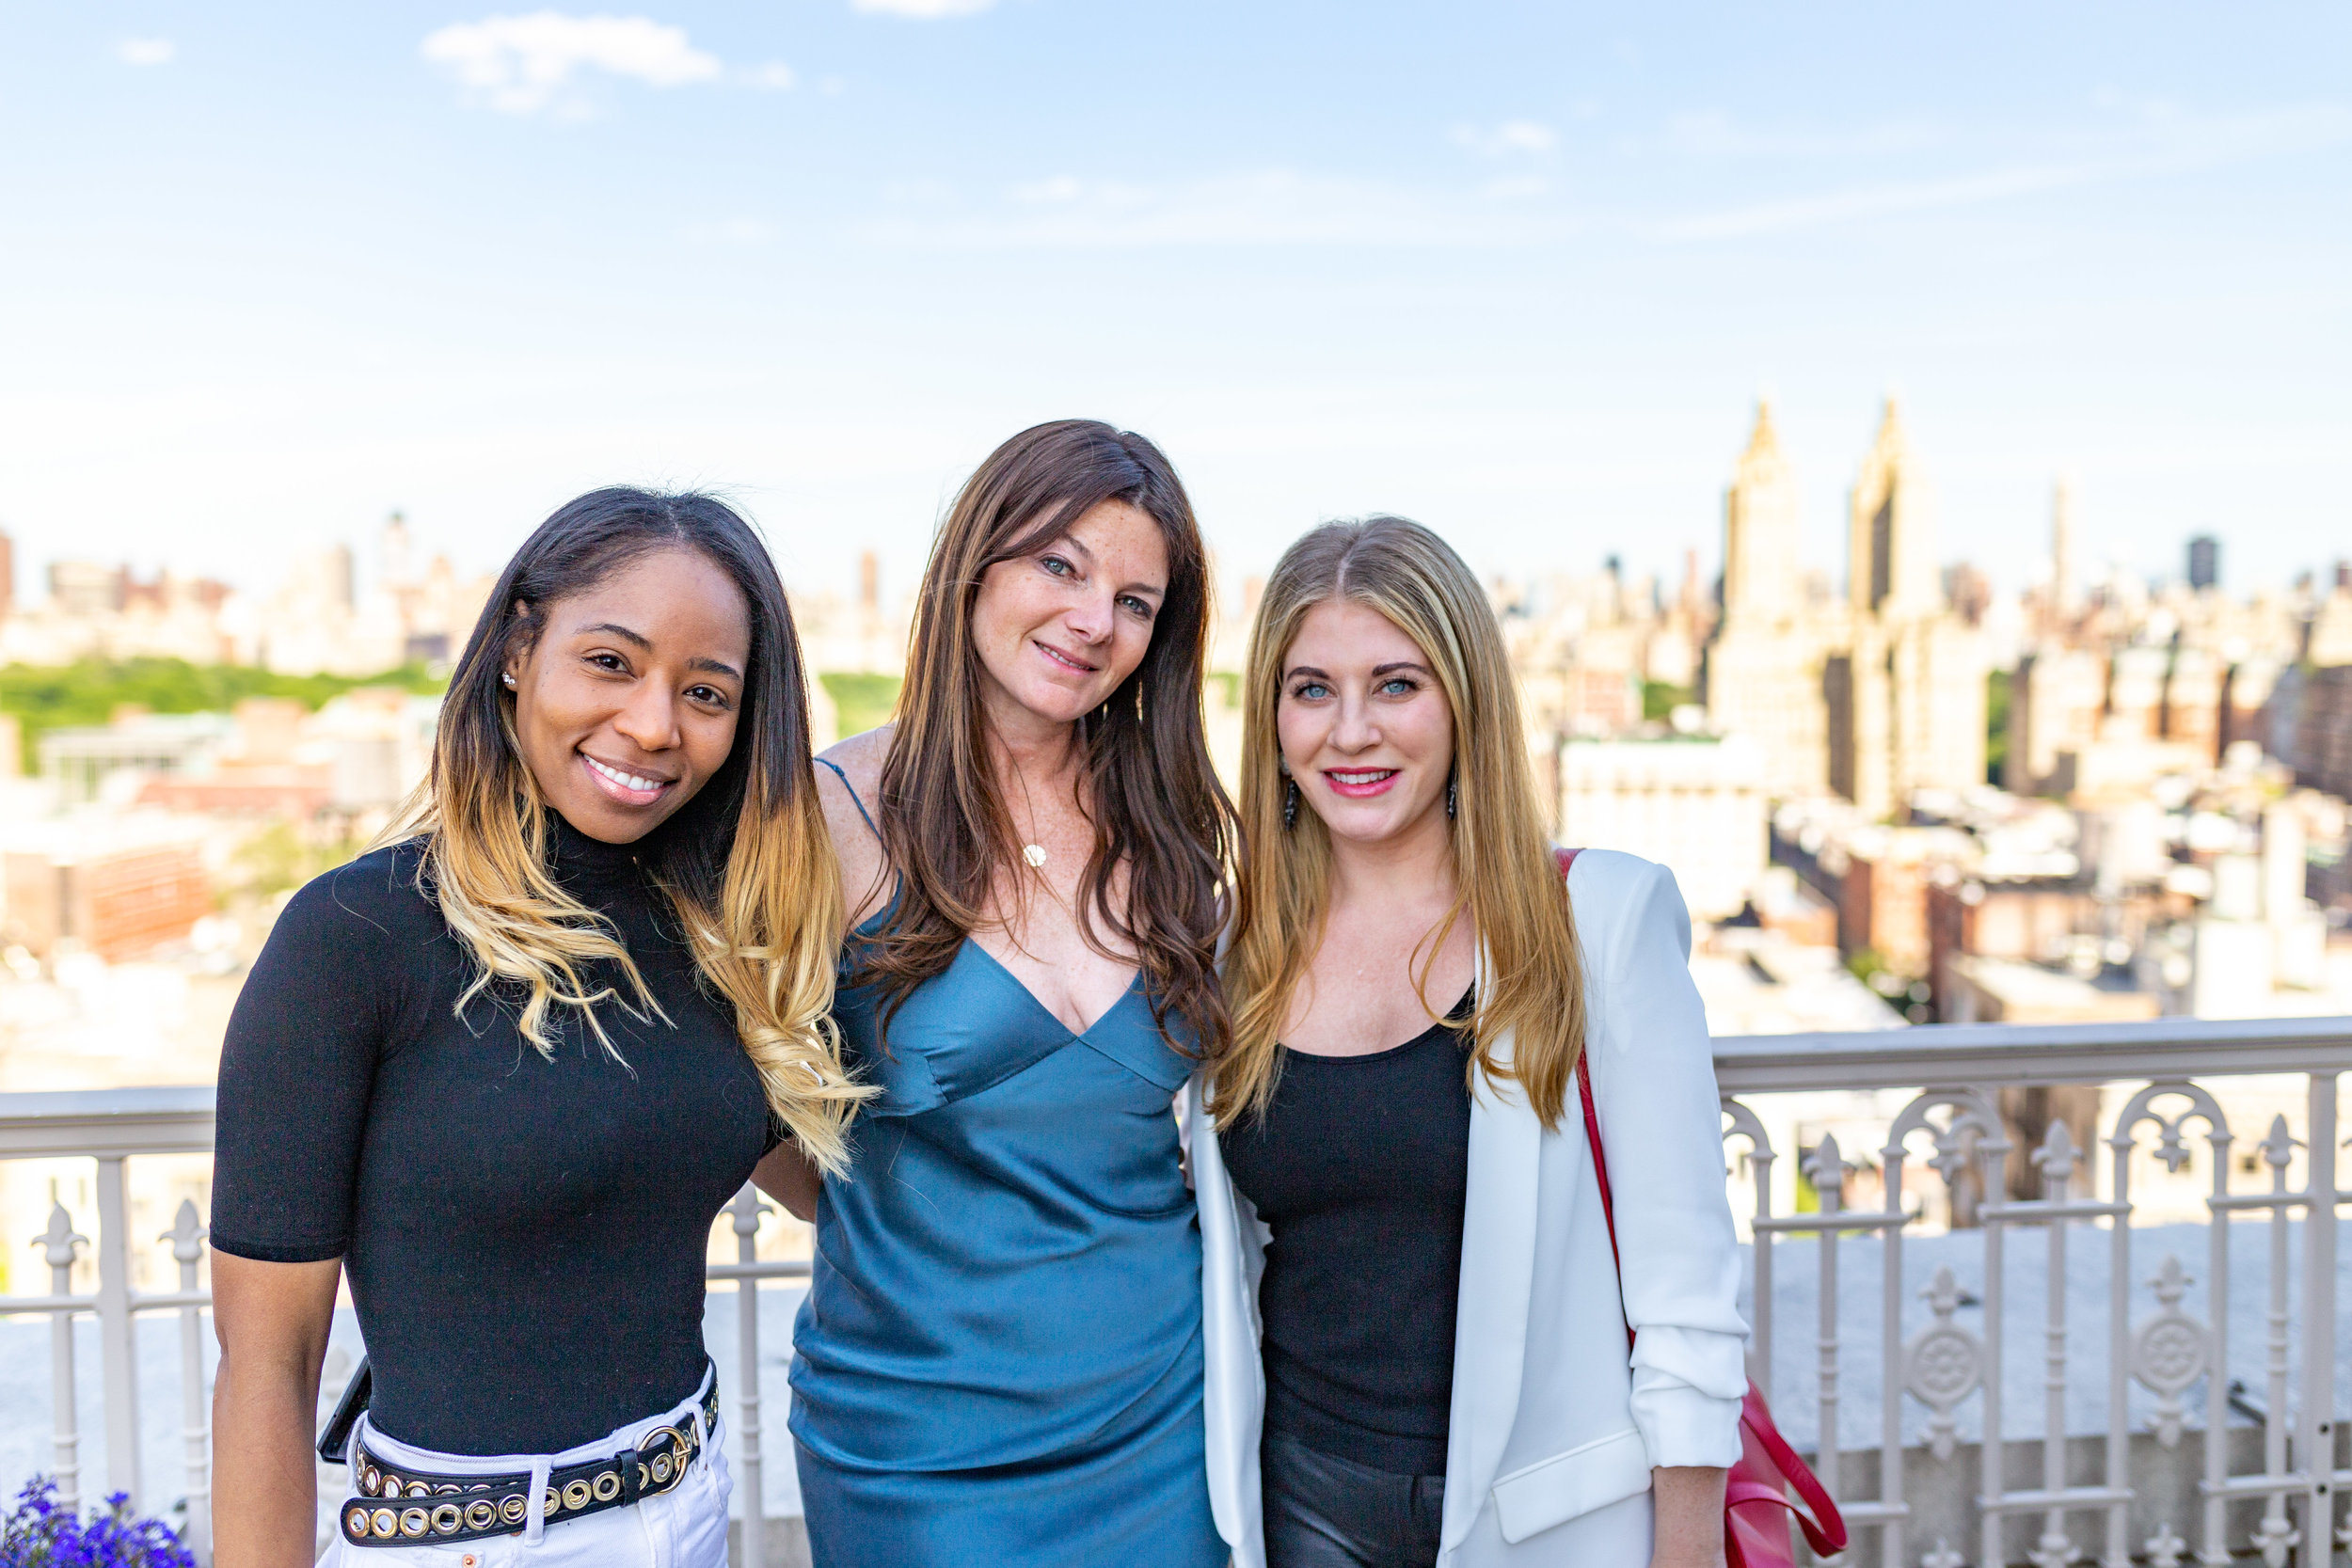 Shalaiwah Alveranga, Marketing and Sales Manager, Elad Group; Jennifer Kalish, Agent, Douglas Elliman; and, Samantha Sax, Chief Marketing and Design Officer, Elad Group